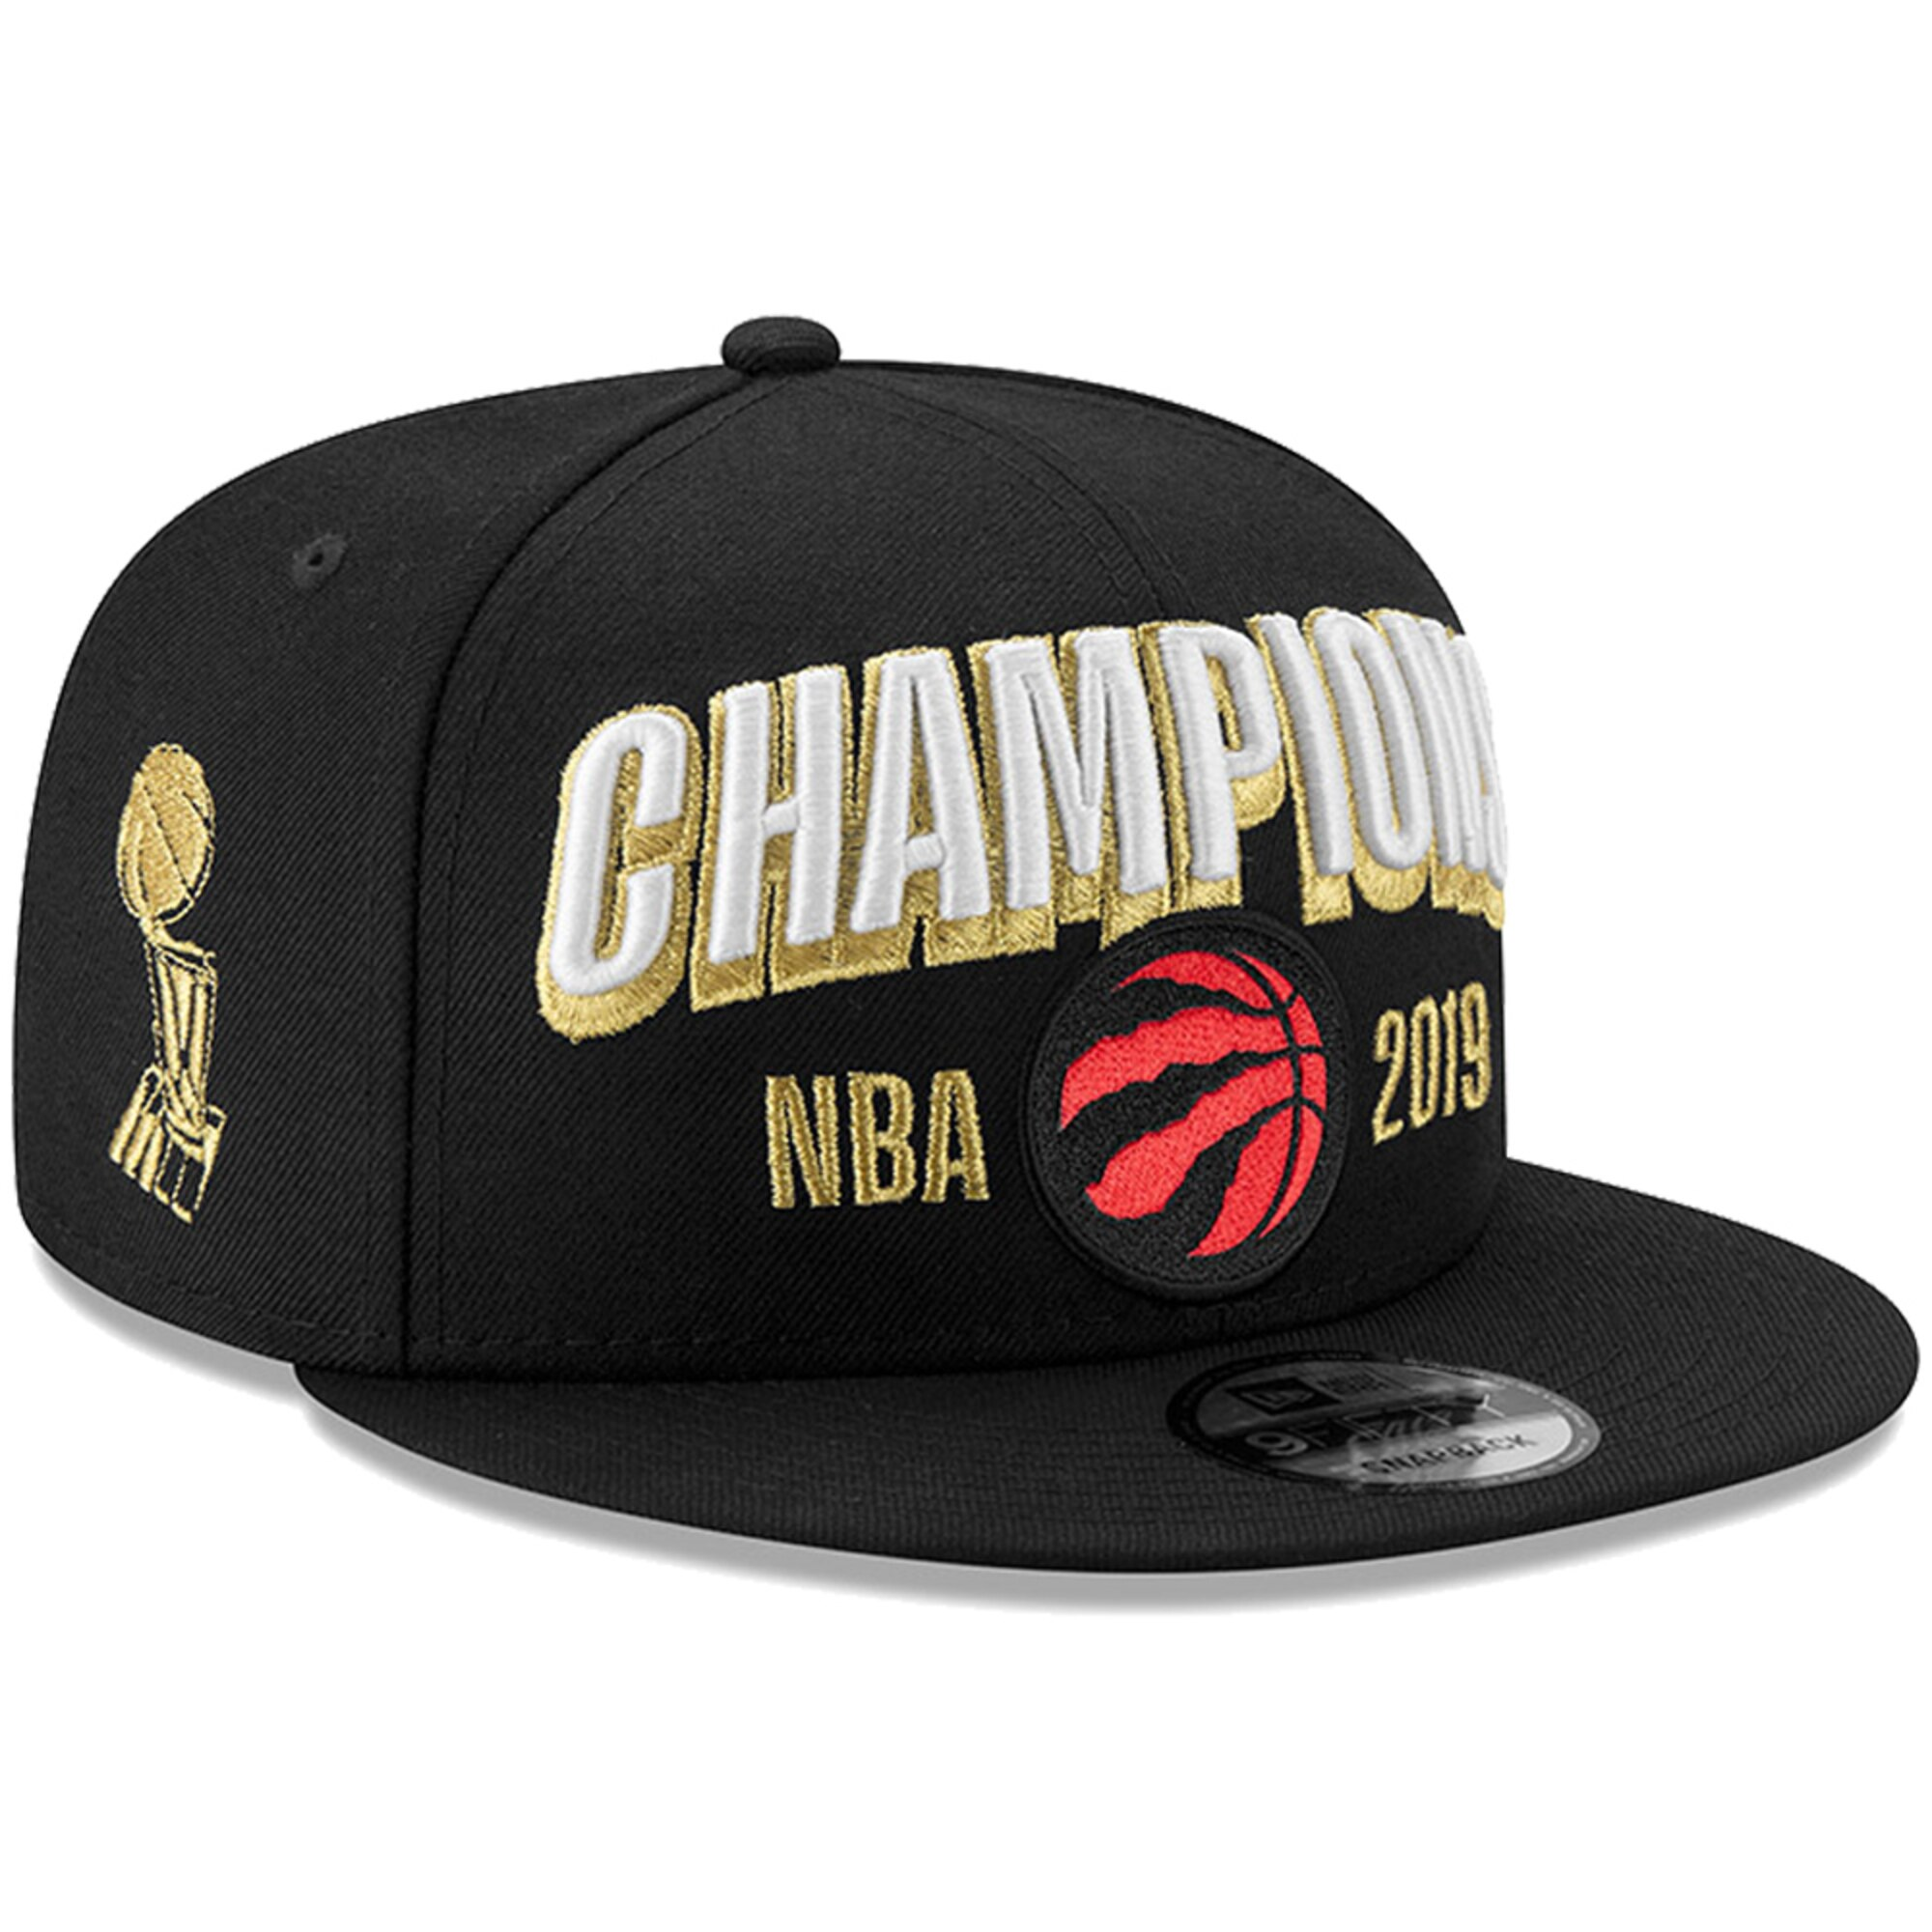 Raptors Team Logo Black 2019 NBA Finals Champions Adjustable Hat SG